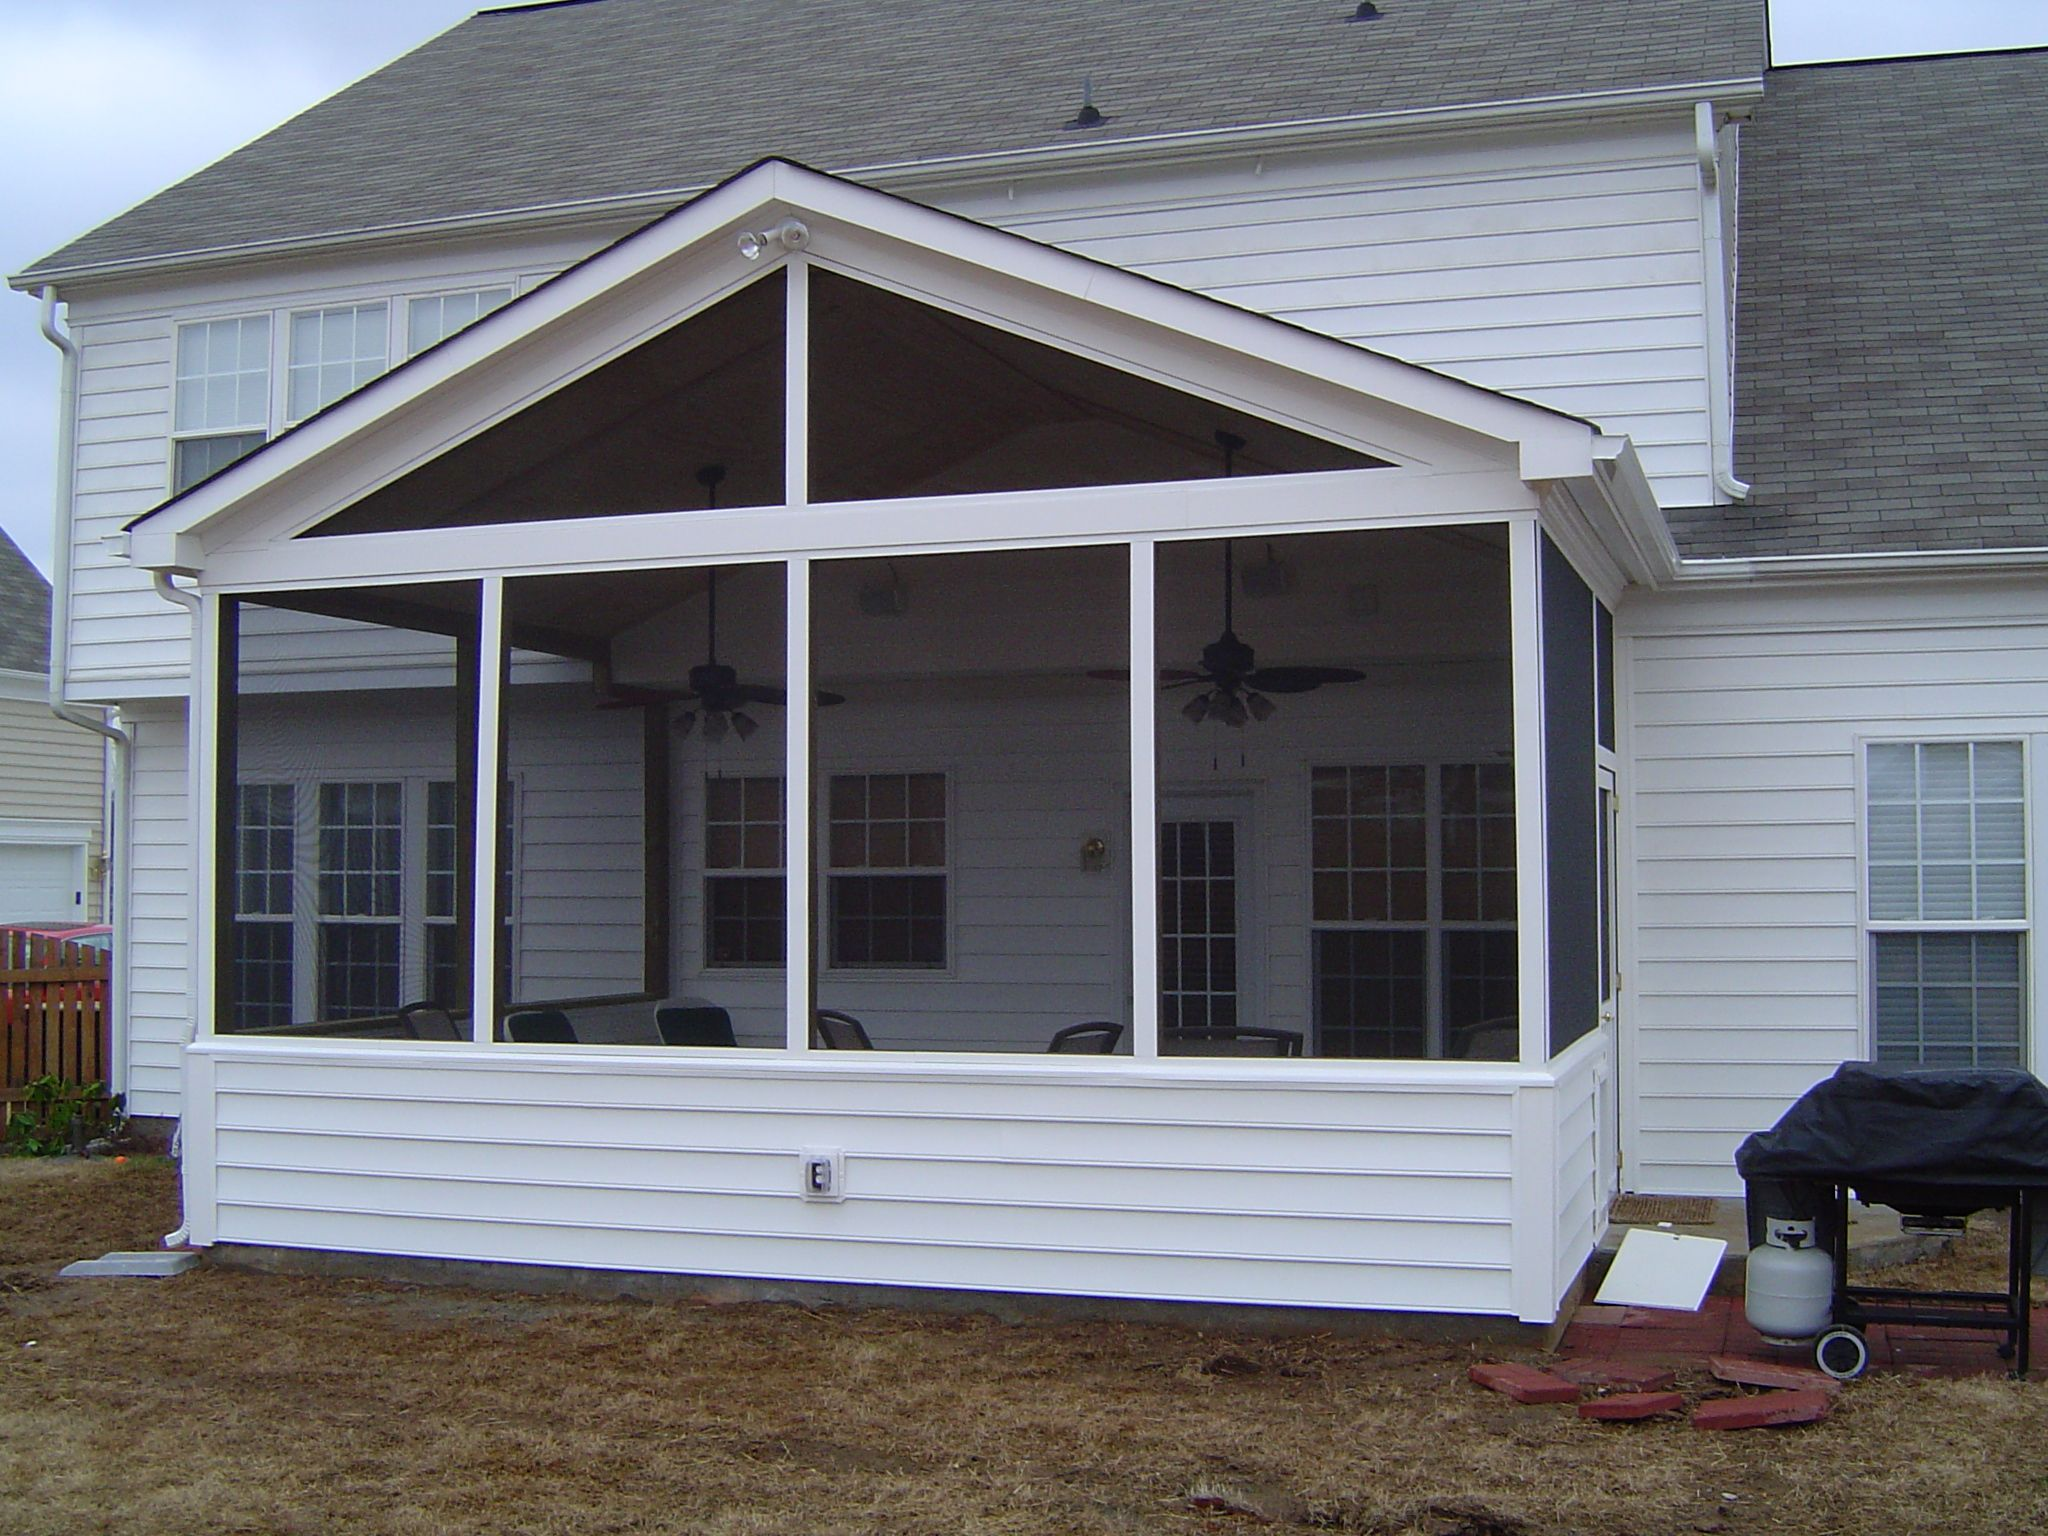 Screen porch with vinyl siding screened porches pinterest screened porches vinyl siding Screened porch plans designs